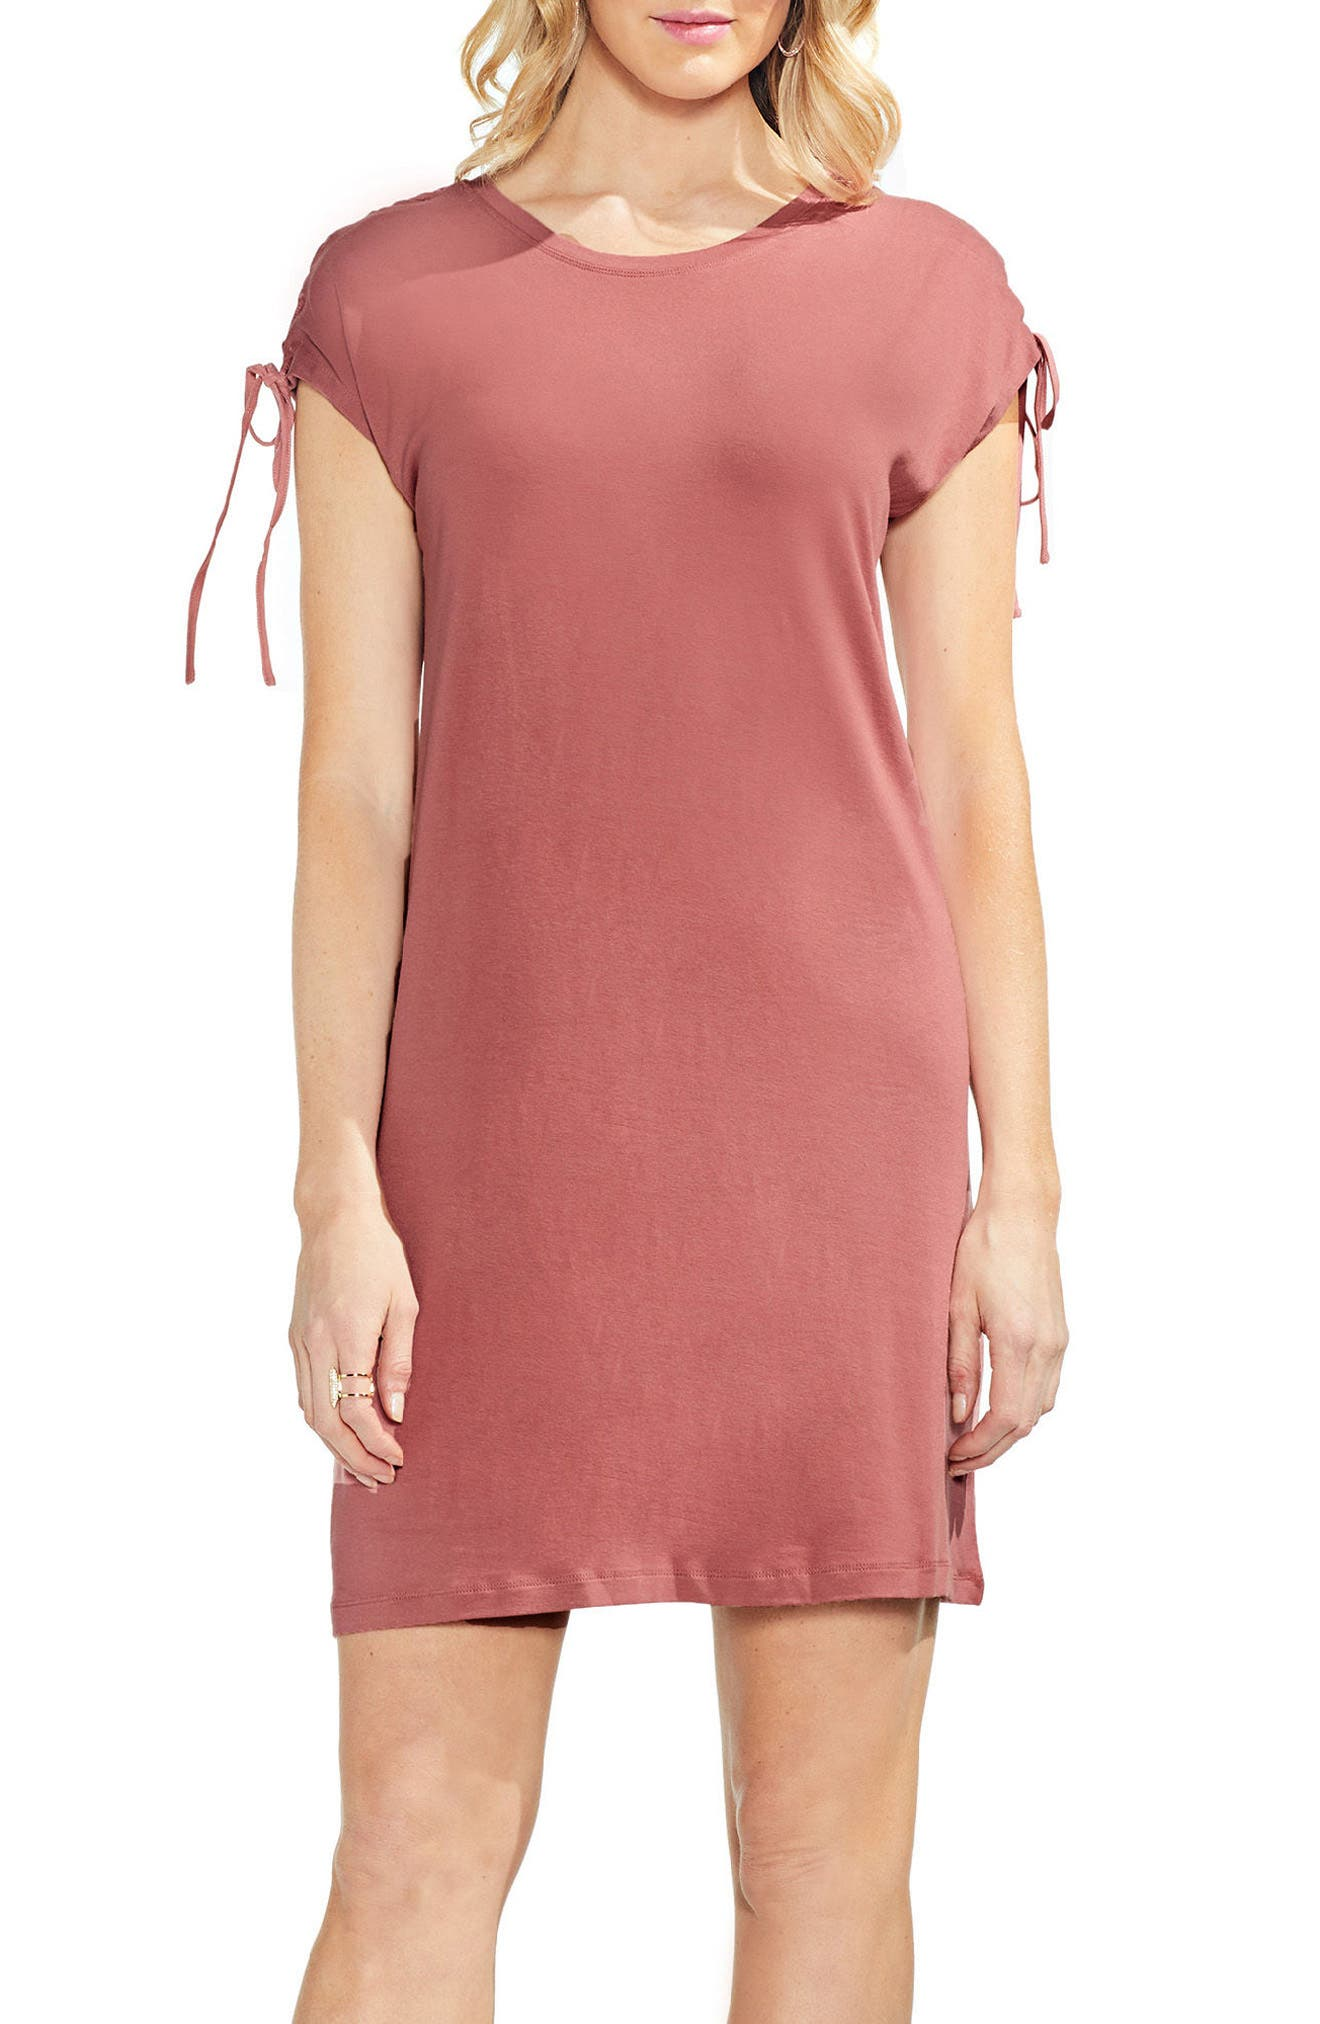 Lace-Up Shoulder Dress,                             Alternate thumbnail 3, color,                             Claret Shadow